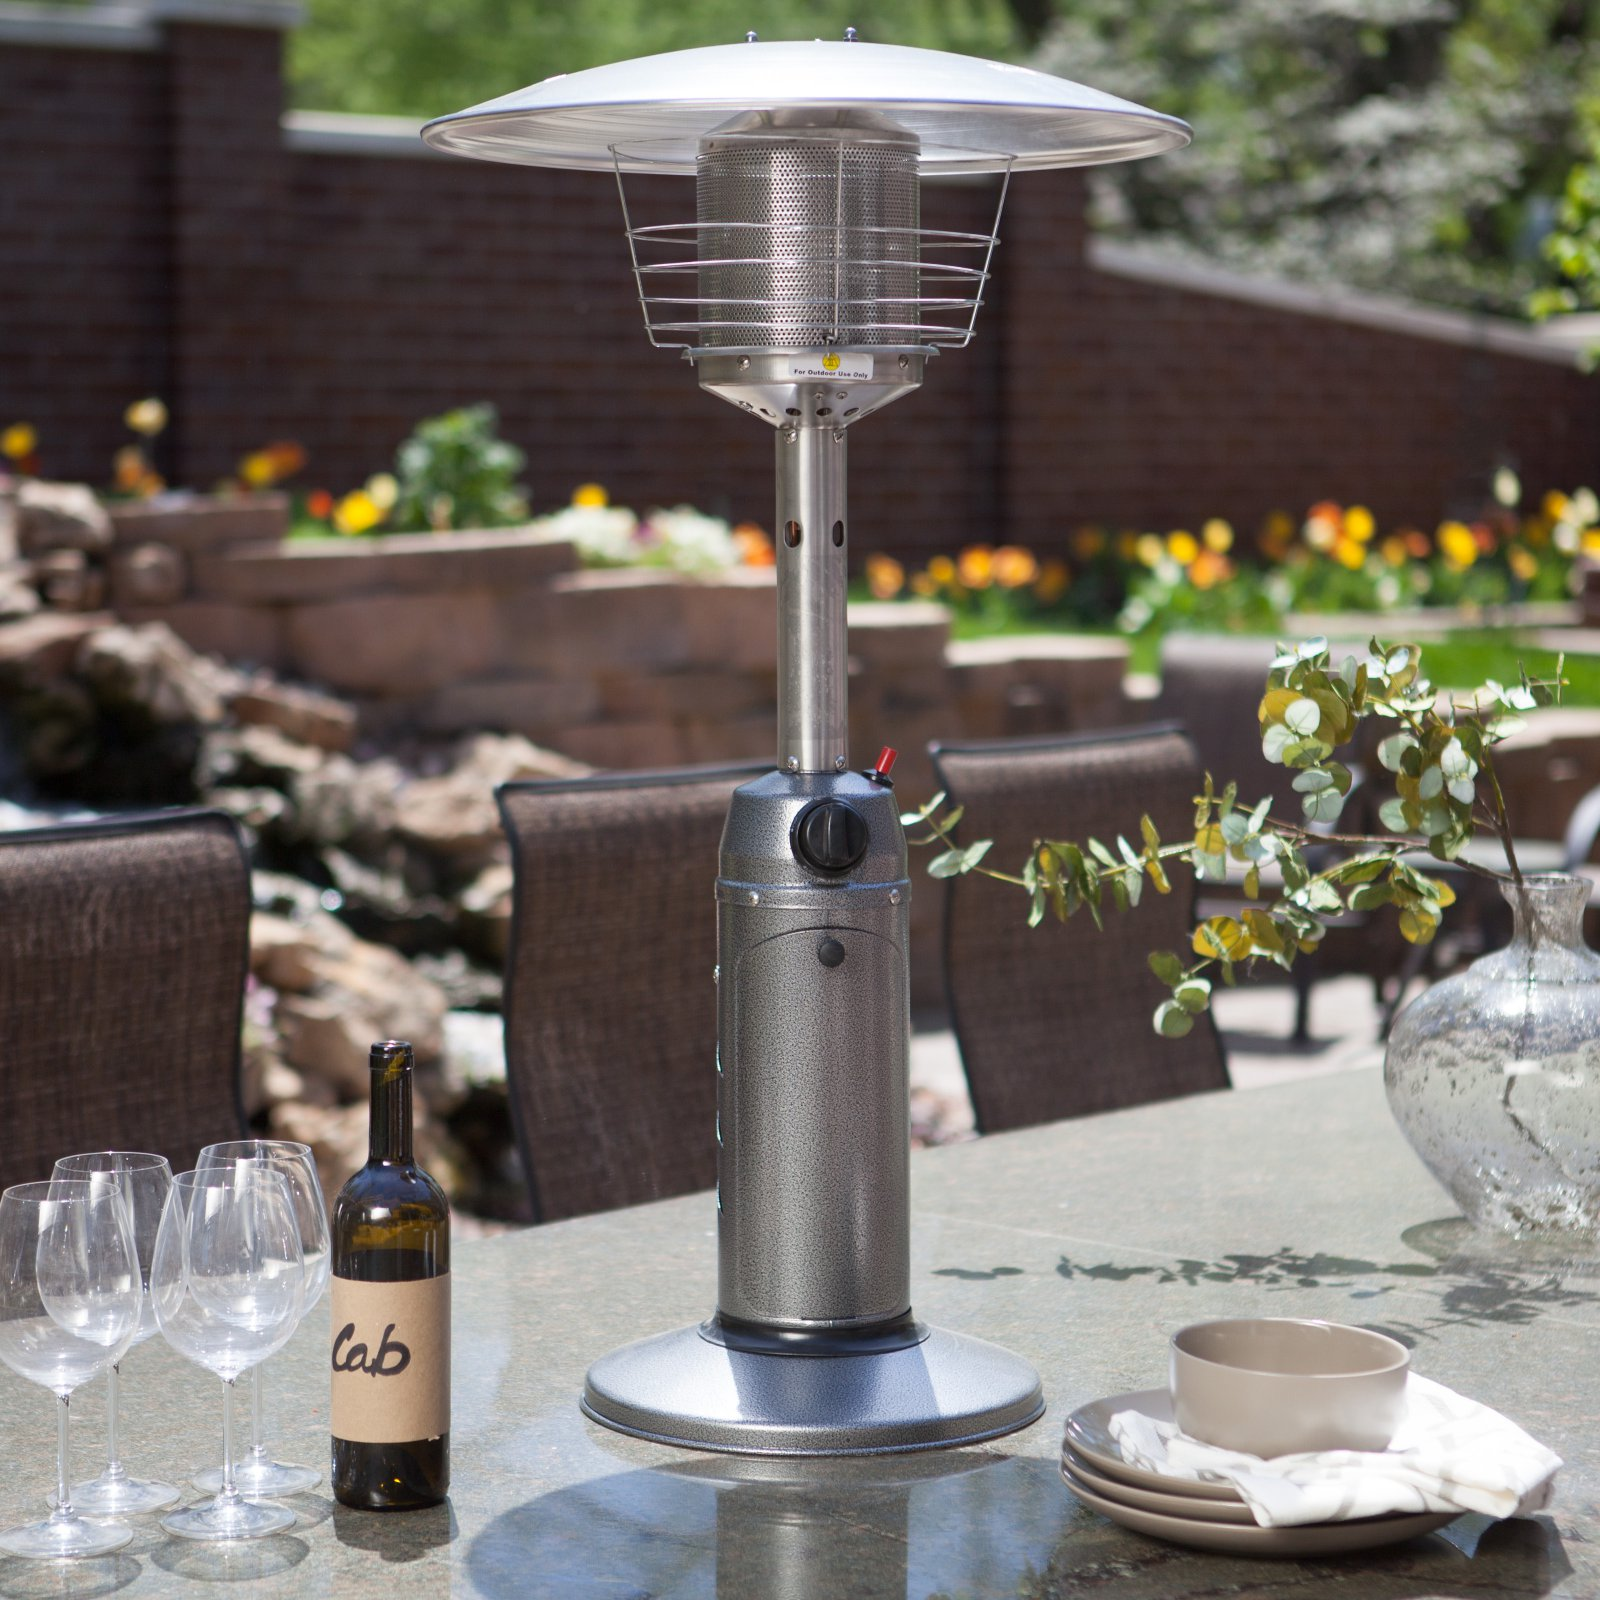 Delicieux AZ Patio Heater Portable Gunmetal Tabletop Heater